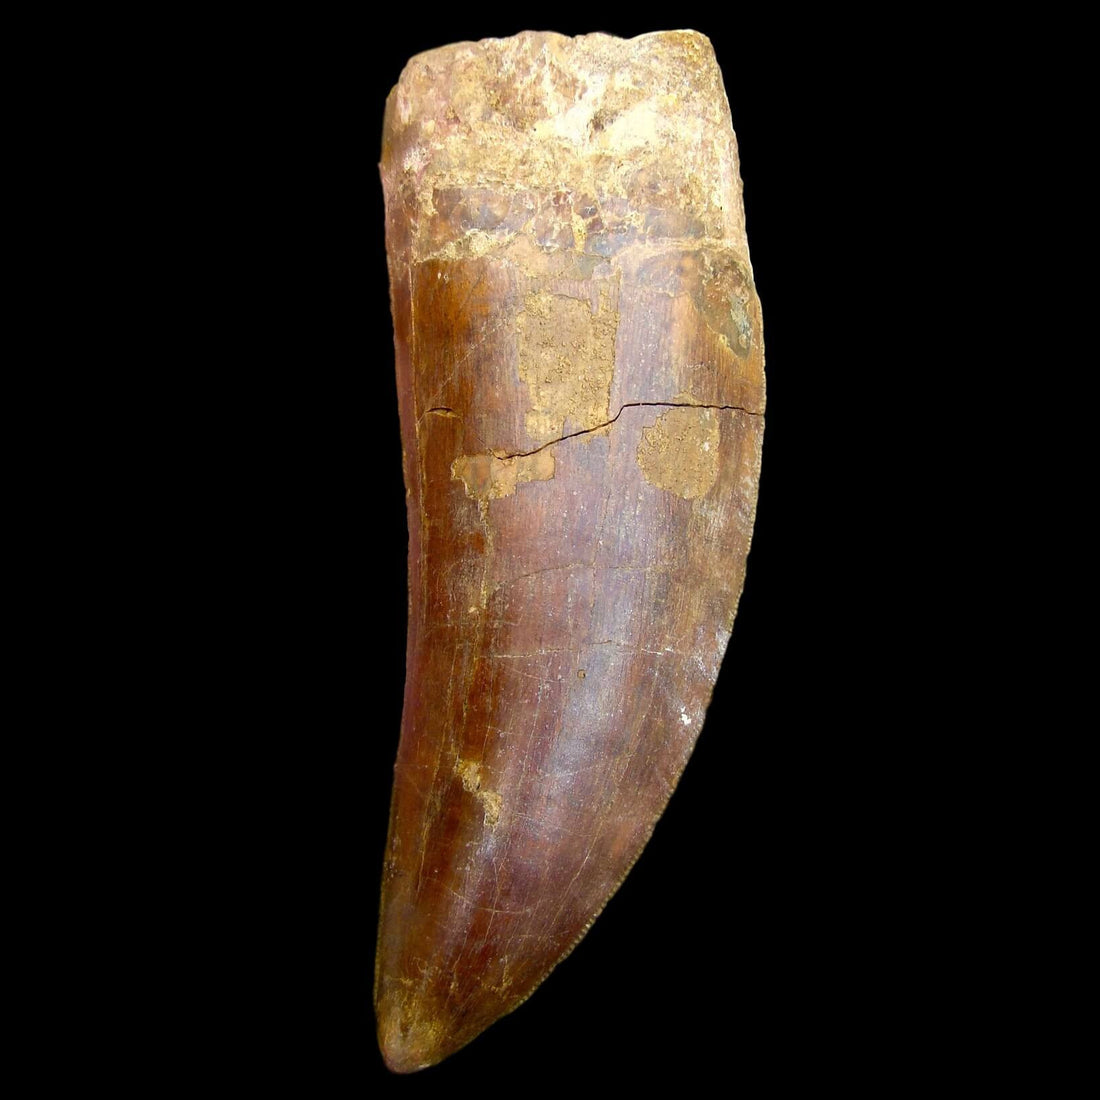 Dinosaur Teeth 5 in. * THE BEAST * Carcharodontosaurus Tooth